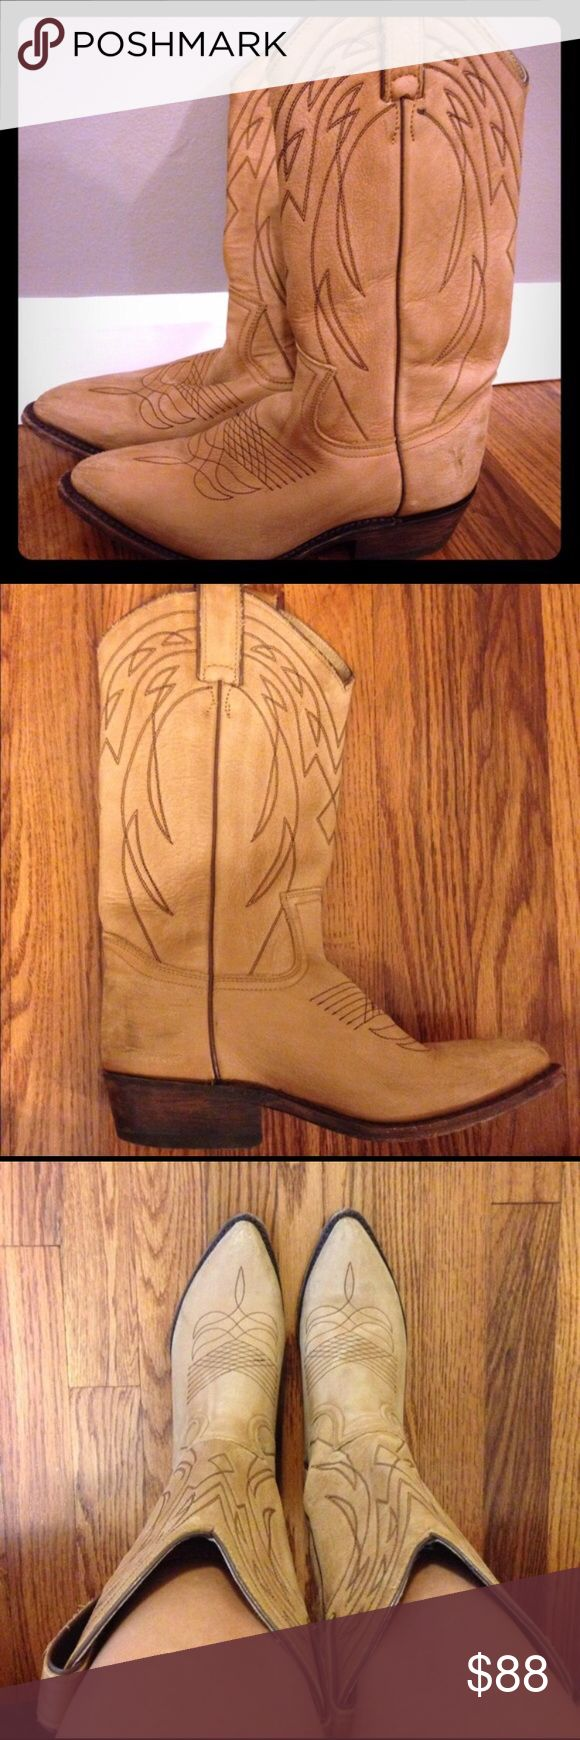 """FRYE Cowgirl Boots FRYE Cowgirl Boots 6 1/2. Some signs of wear but very nice quality!! The back of the heel measures 1.5"""". The length of the shaft is about 12"""" and the circumference at the middle of the shaft is also about 12"""". As seen in pics, style is pre worked at heels and toe. Purchased from another seller but they ended up being too small for me  Retails over $150  Please message me before purchasing! Also feel free to make me a reasonable offer :)  #boots #frye #hunter #cowgirl…"""